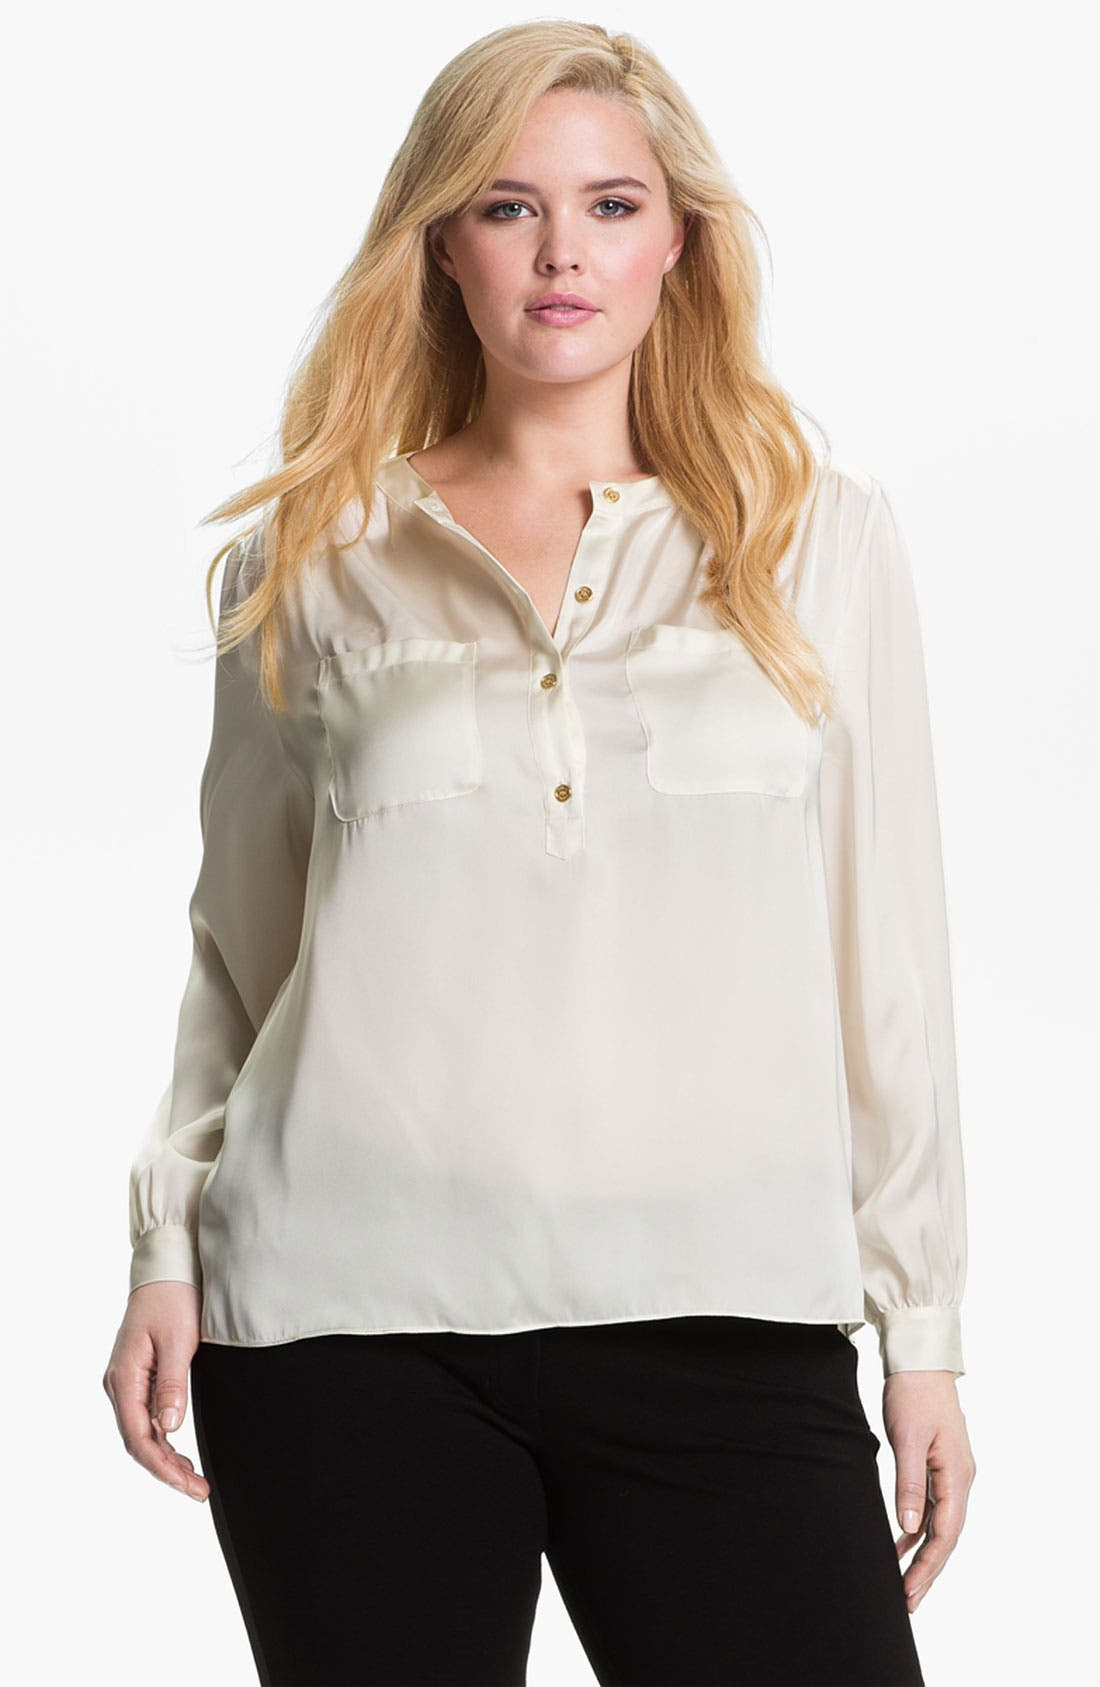 Alternate Image 1 Selected - Vince Camuto Satin Henley Blouse (Plus)